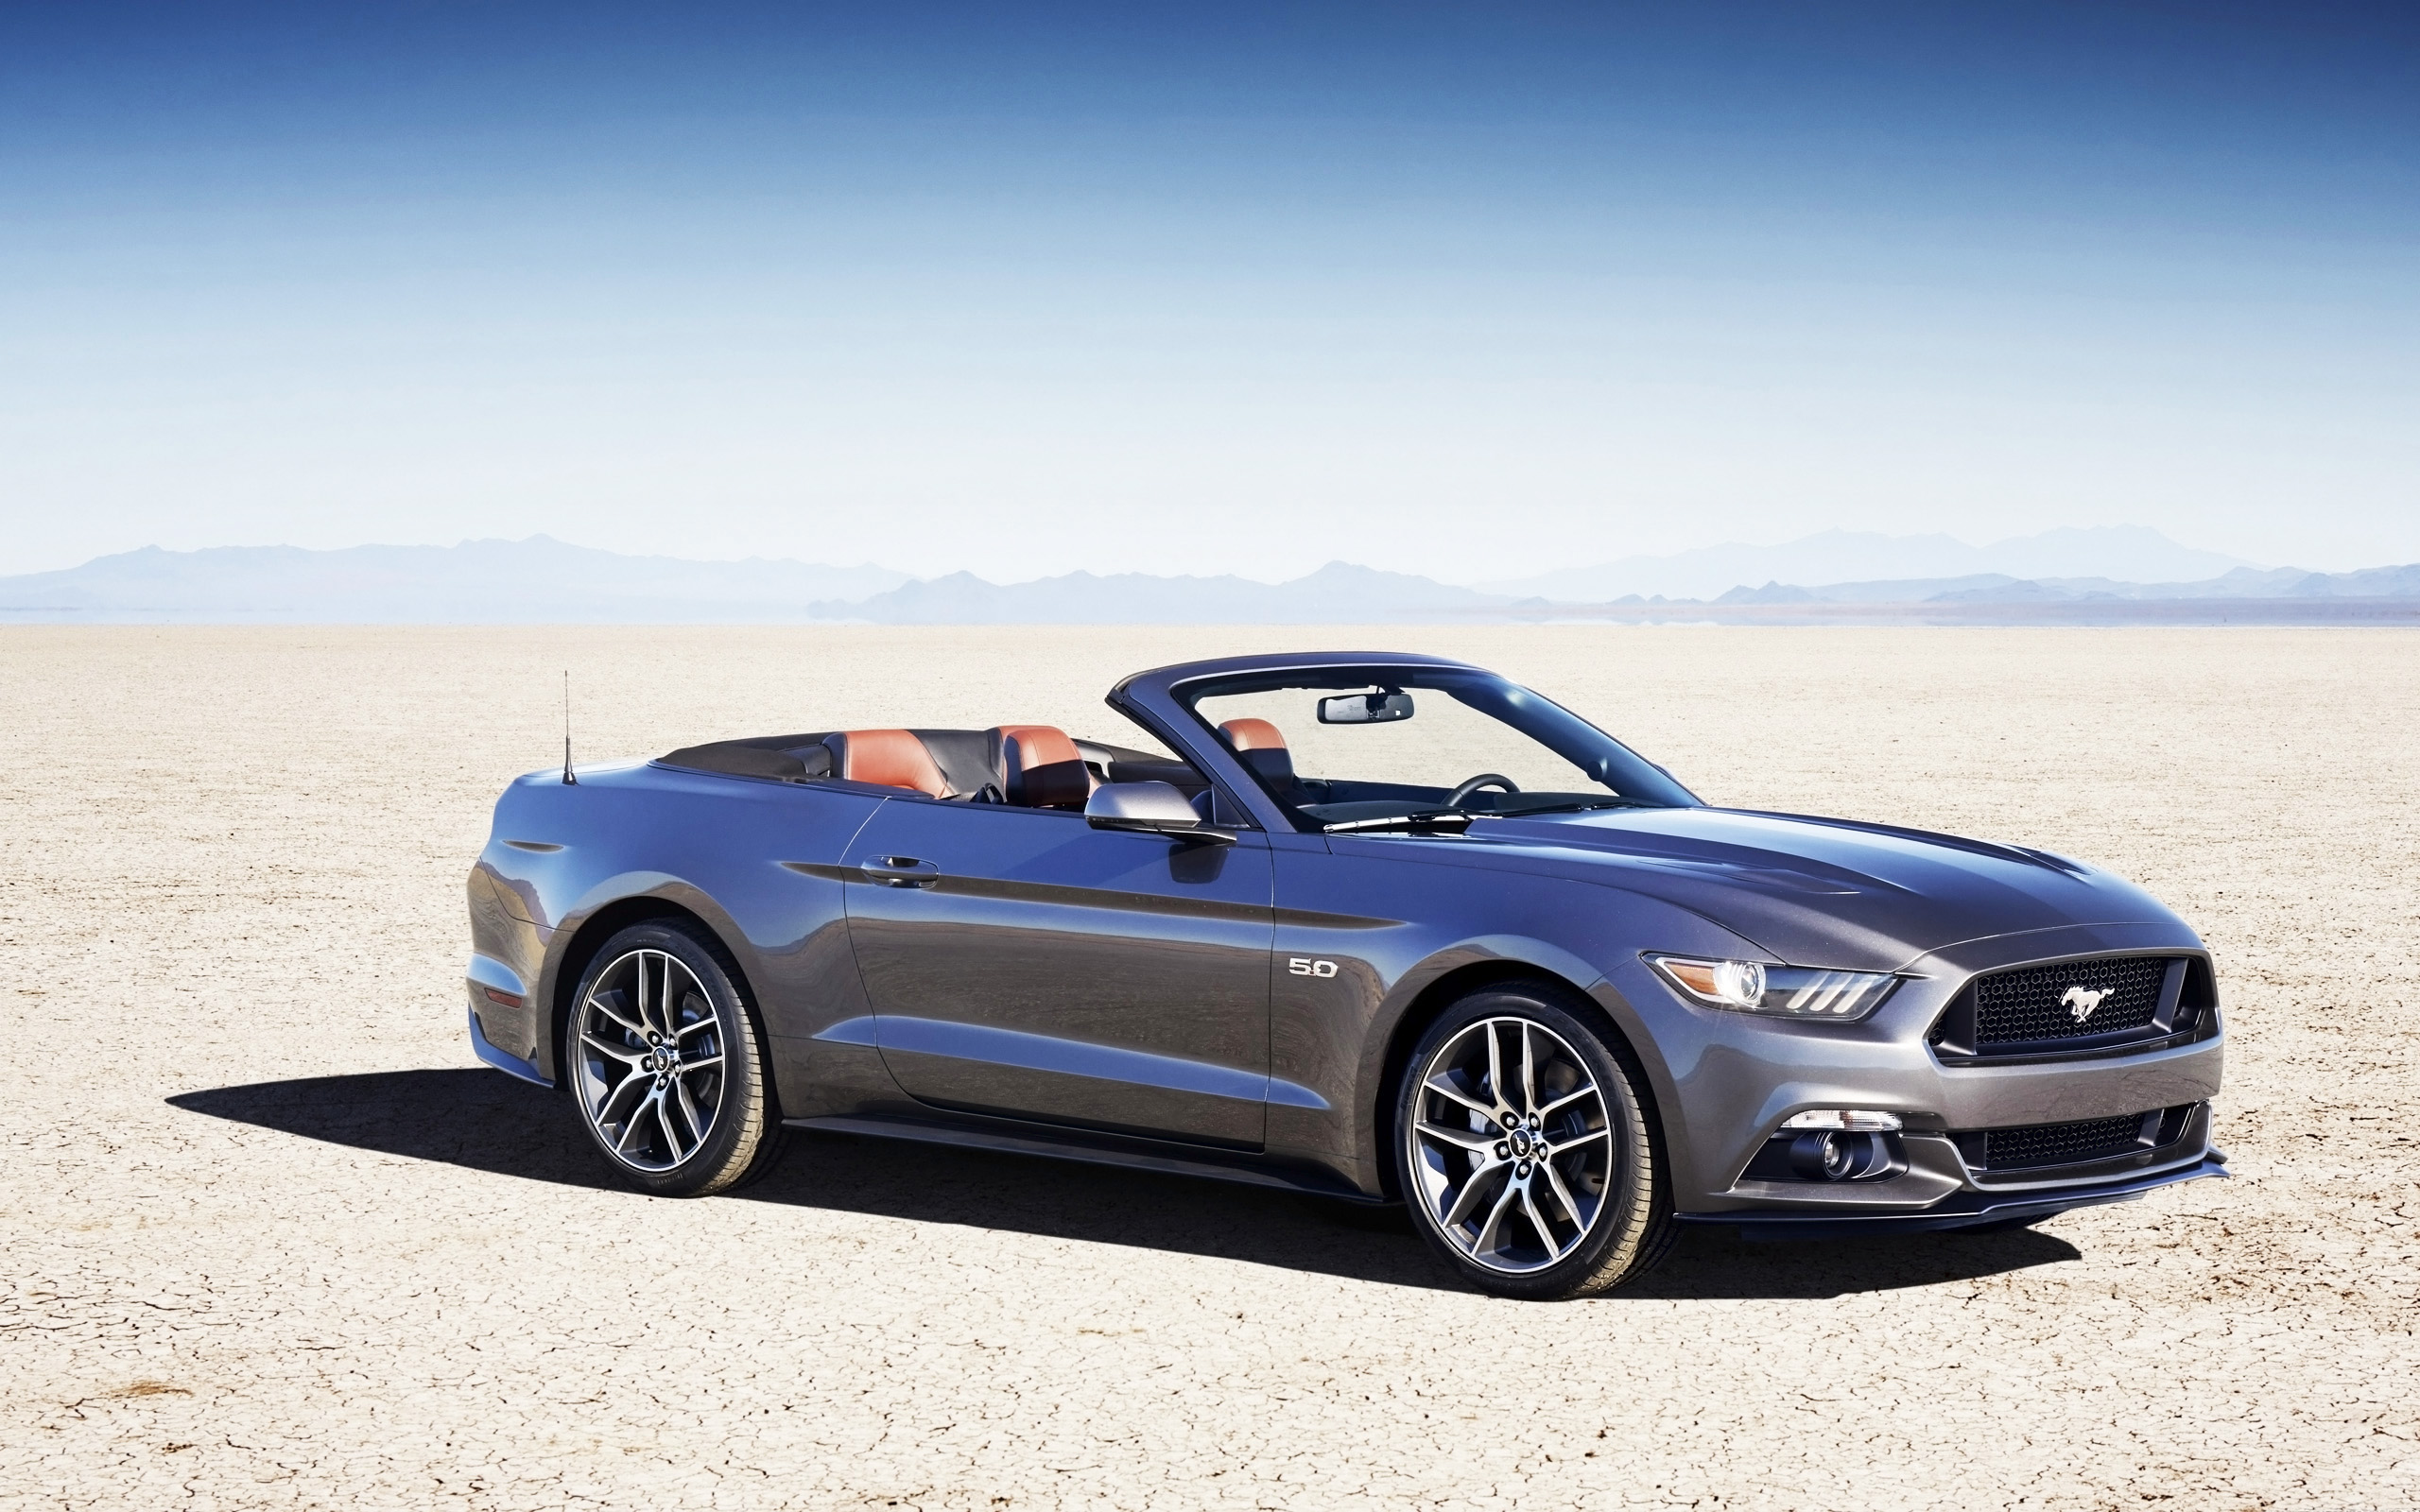 2015 Ford Mustang Convertible Wallpaper HD Car Wallpapers 2560x1600